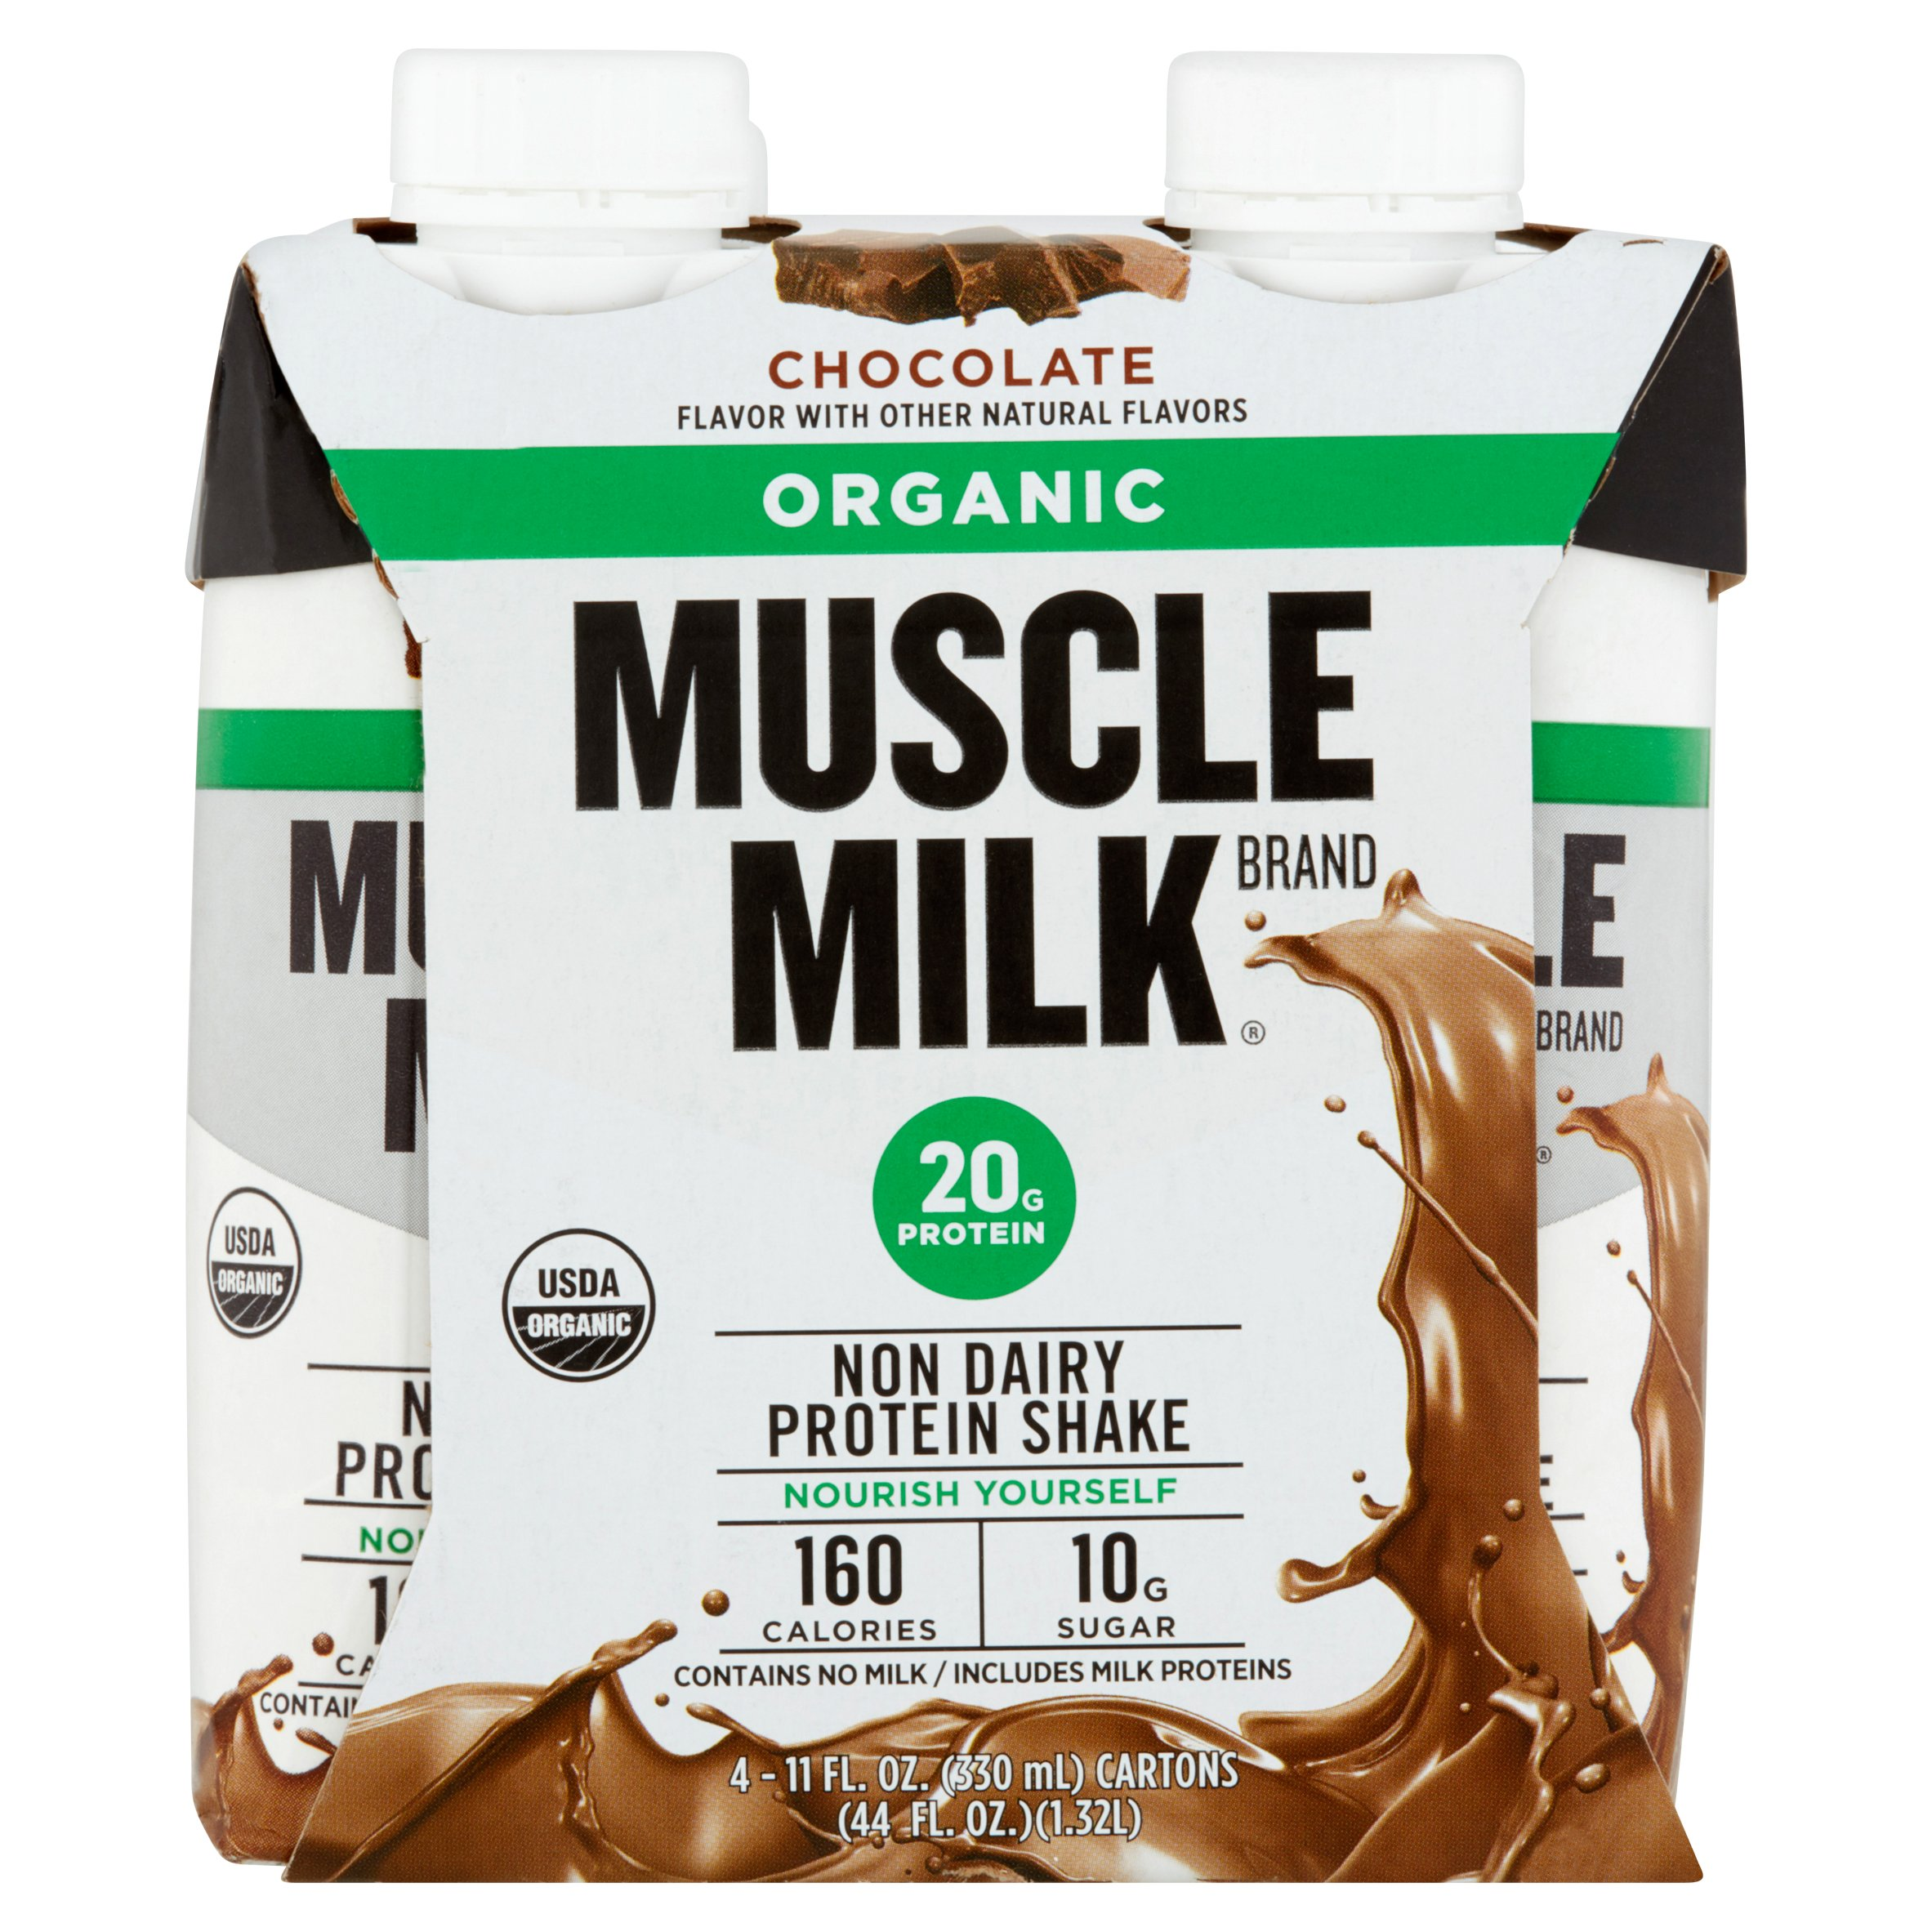 Muscle Milk Organic Chocolate Non Dairy Protein Shake, 11 fl oz, 4 count